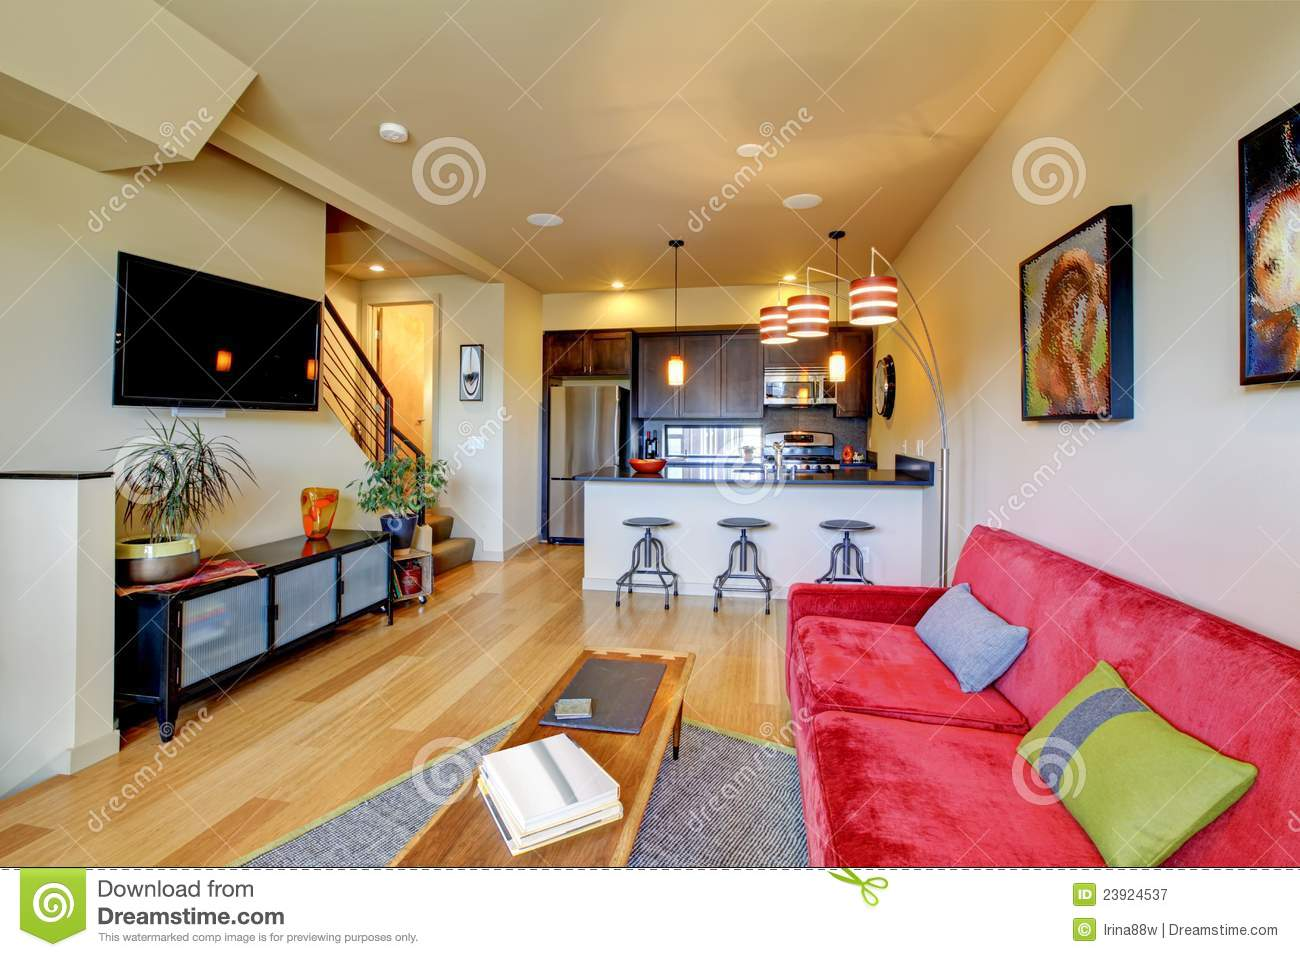 Yellow Living Room Ith Red Sofa And Kitchen Royalty Free Stock graphy Image